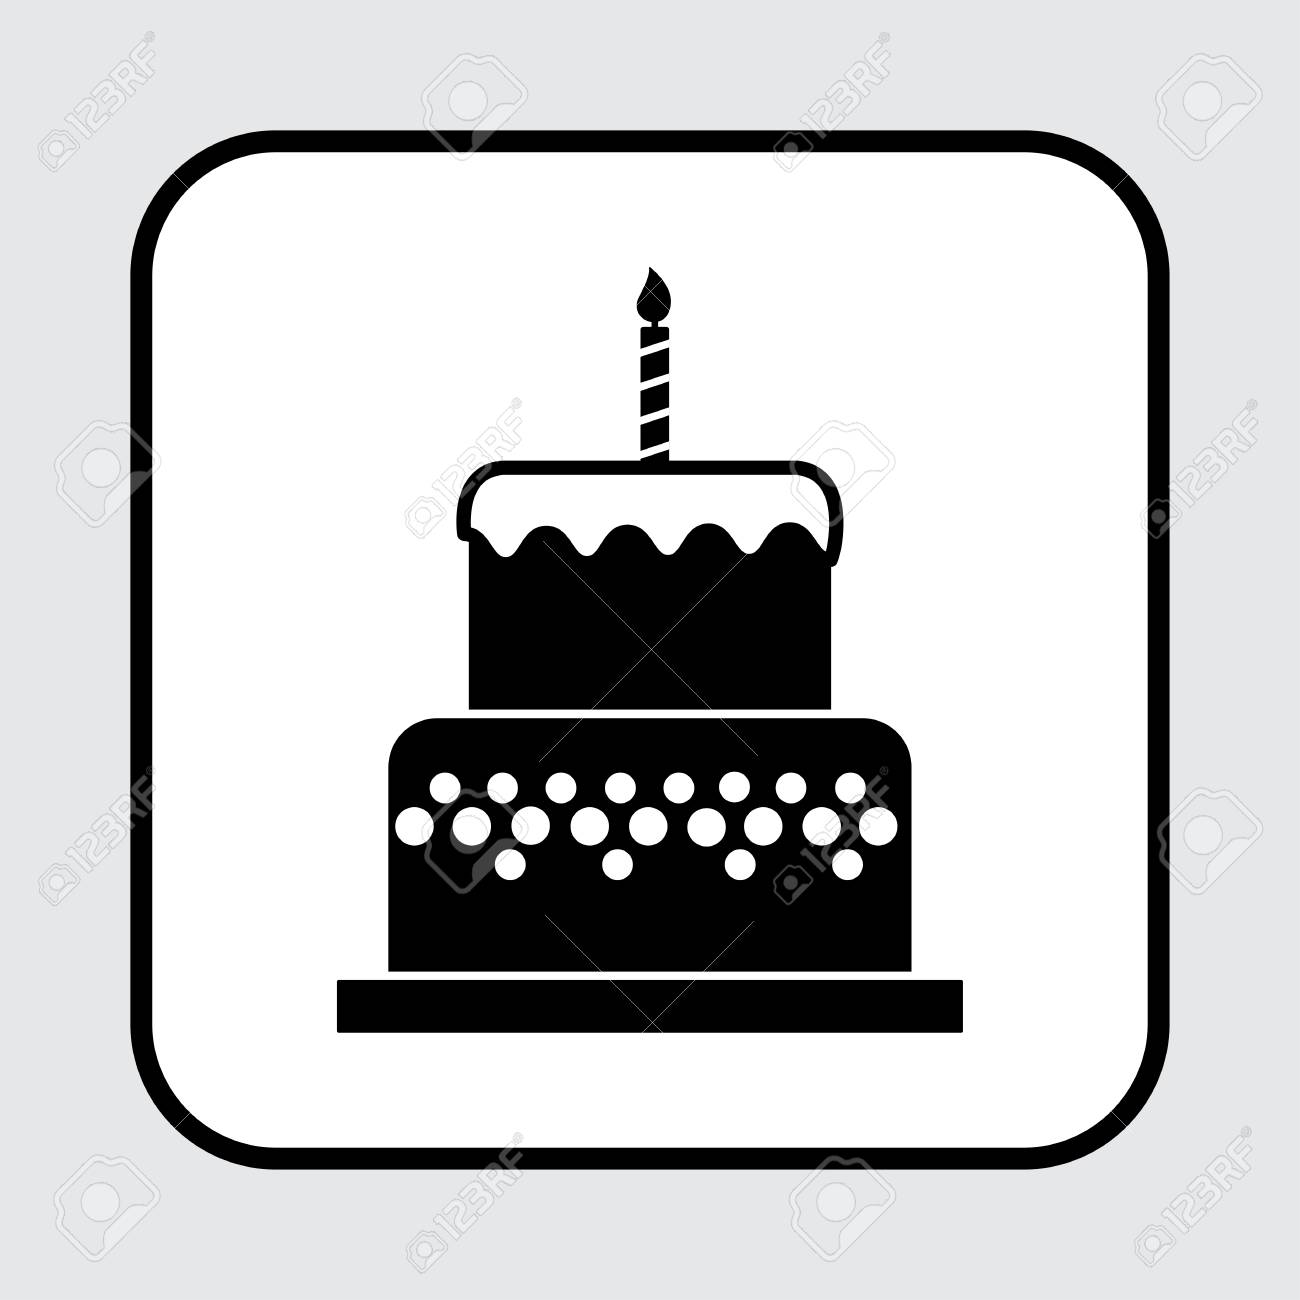 Swell Birthday Cake Icon With A Candle Black And White Color Vector Funny Birthday Cards Online Alyptdamsfinfo